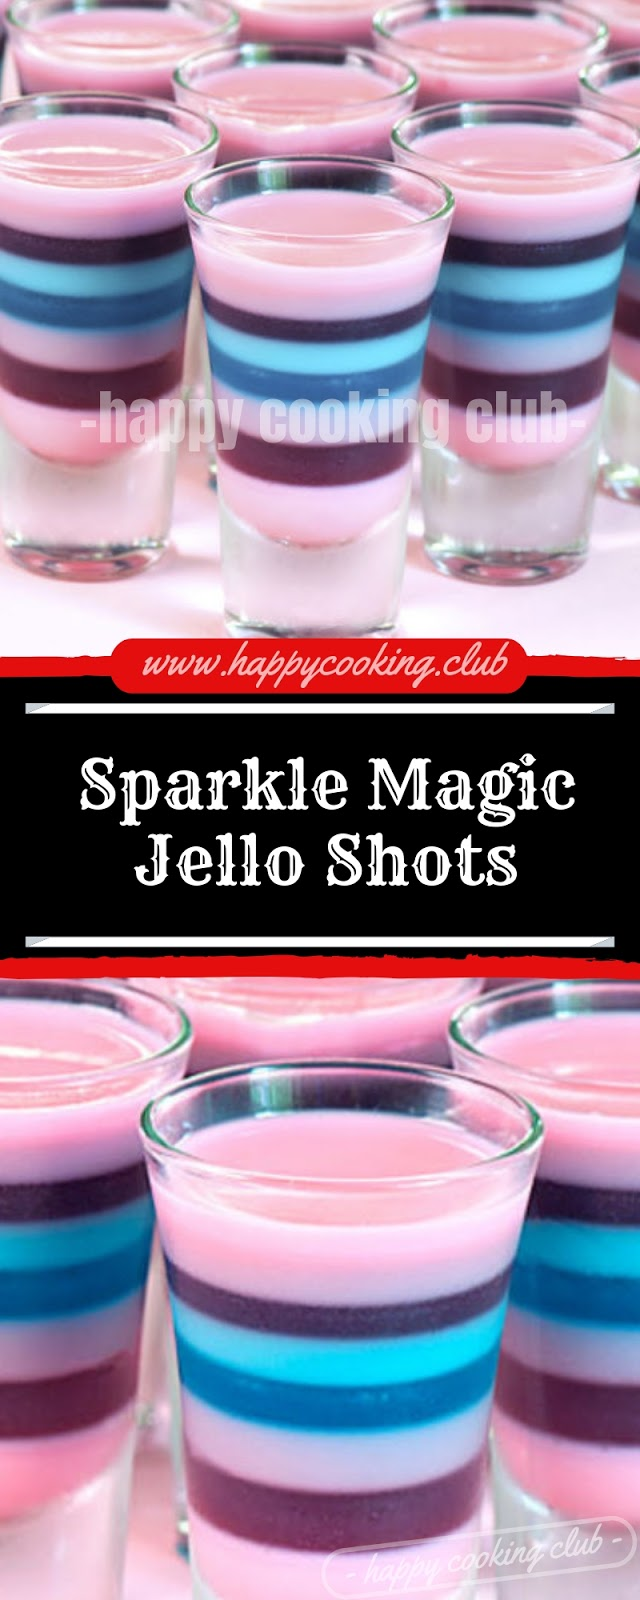 Sparkle Magic Jello Shots